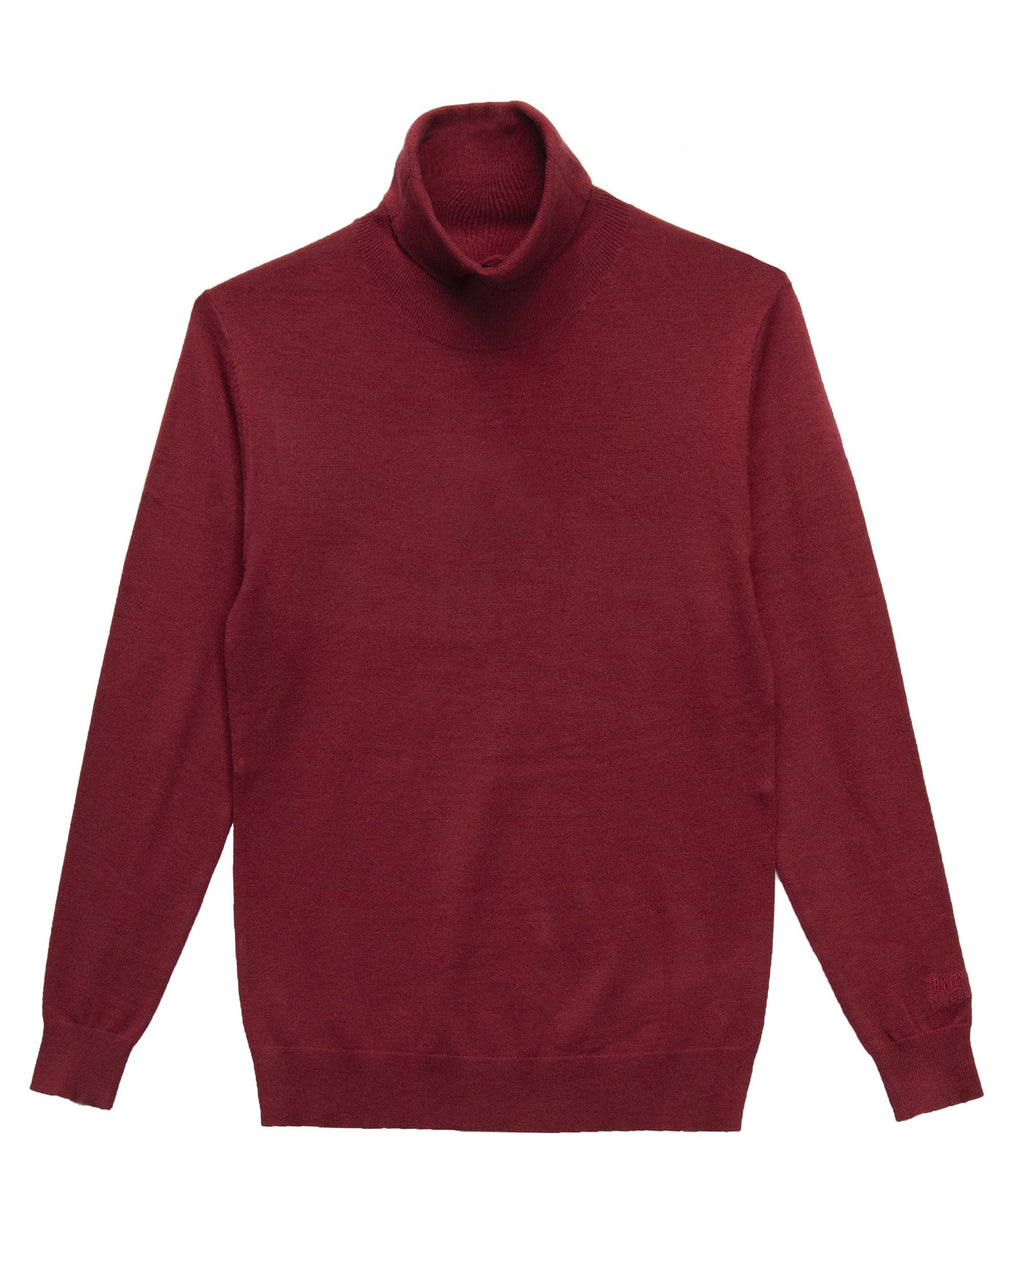 Trinity Kays Kulture Logo Turtleneck Sweater - Wine